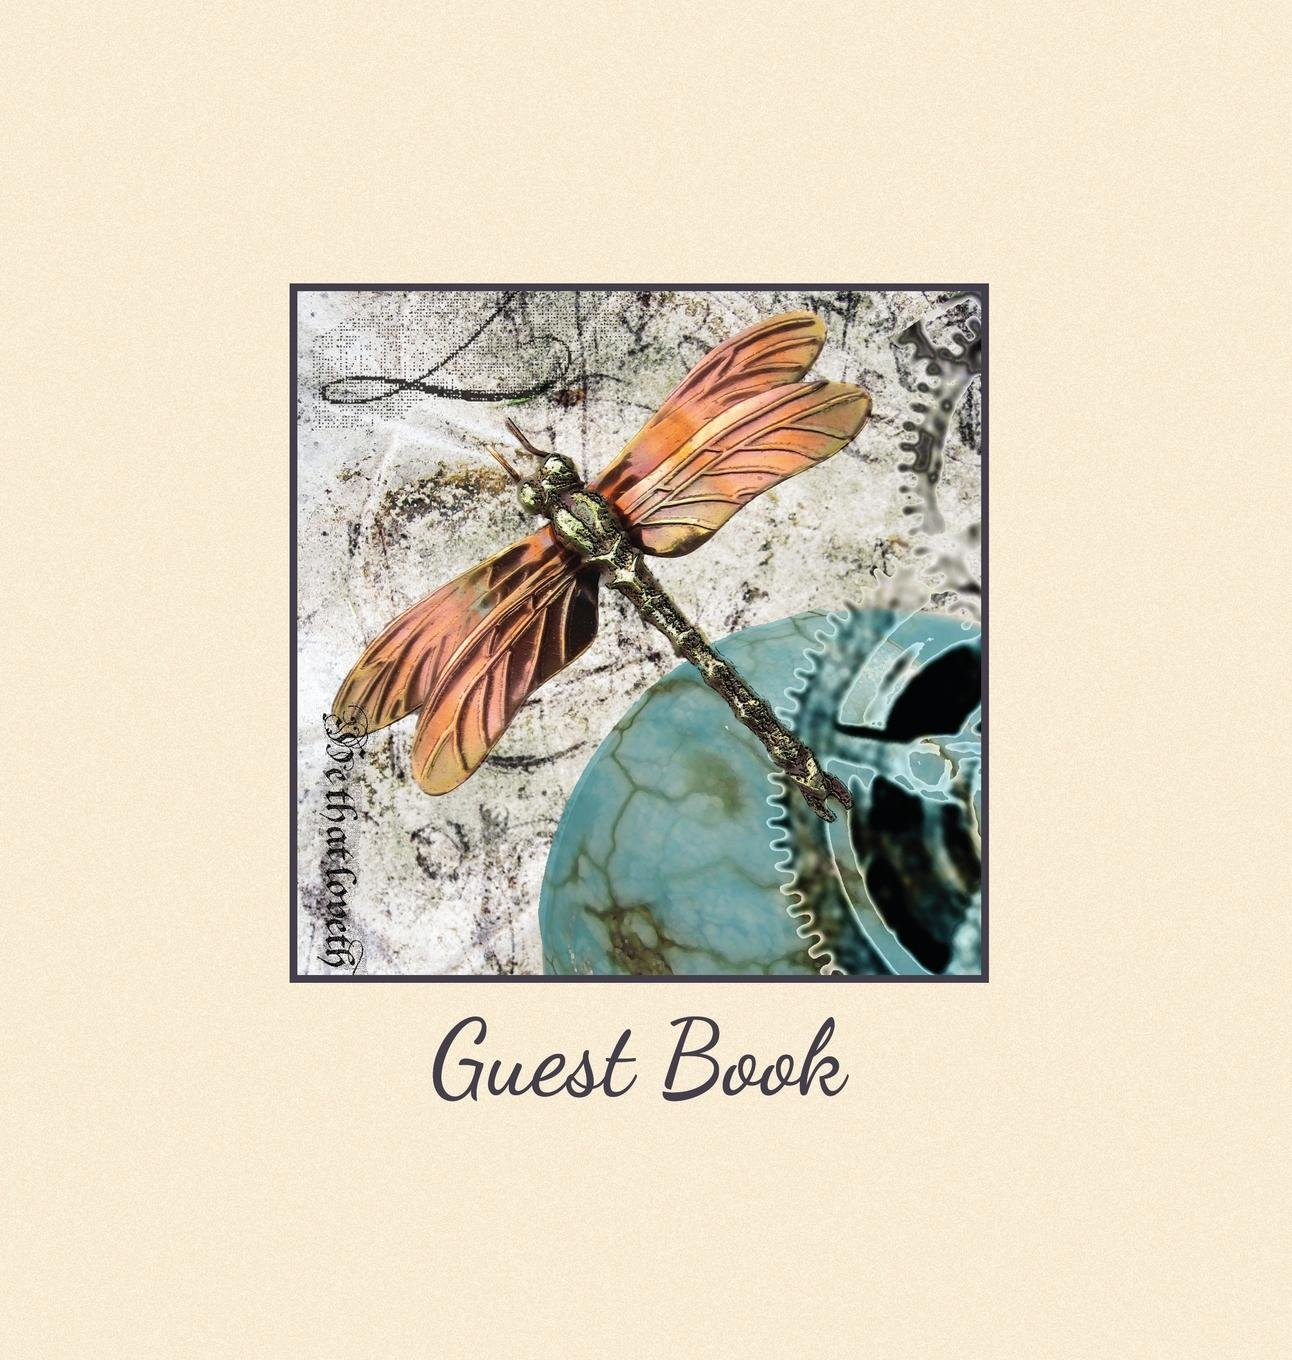 Hardback Guest Book, Visitors Book, Comments Book, Guest Comments Book, House Guest Book, Party Guest Book, Vacation Home Guest Book: For Events, ... Homes, Airbnbs, Workshops & Retreat Centres